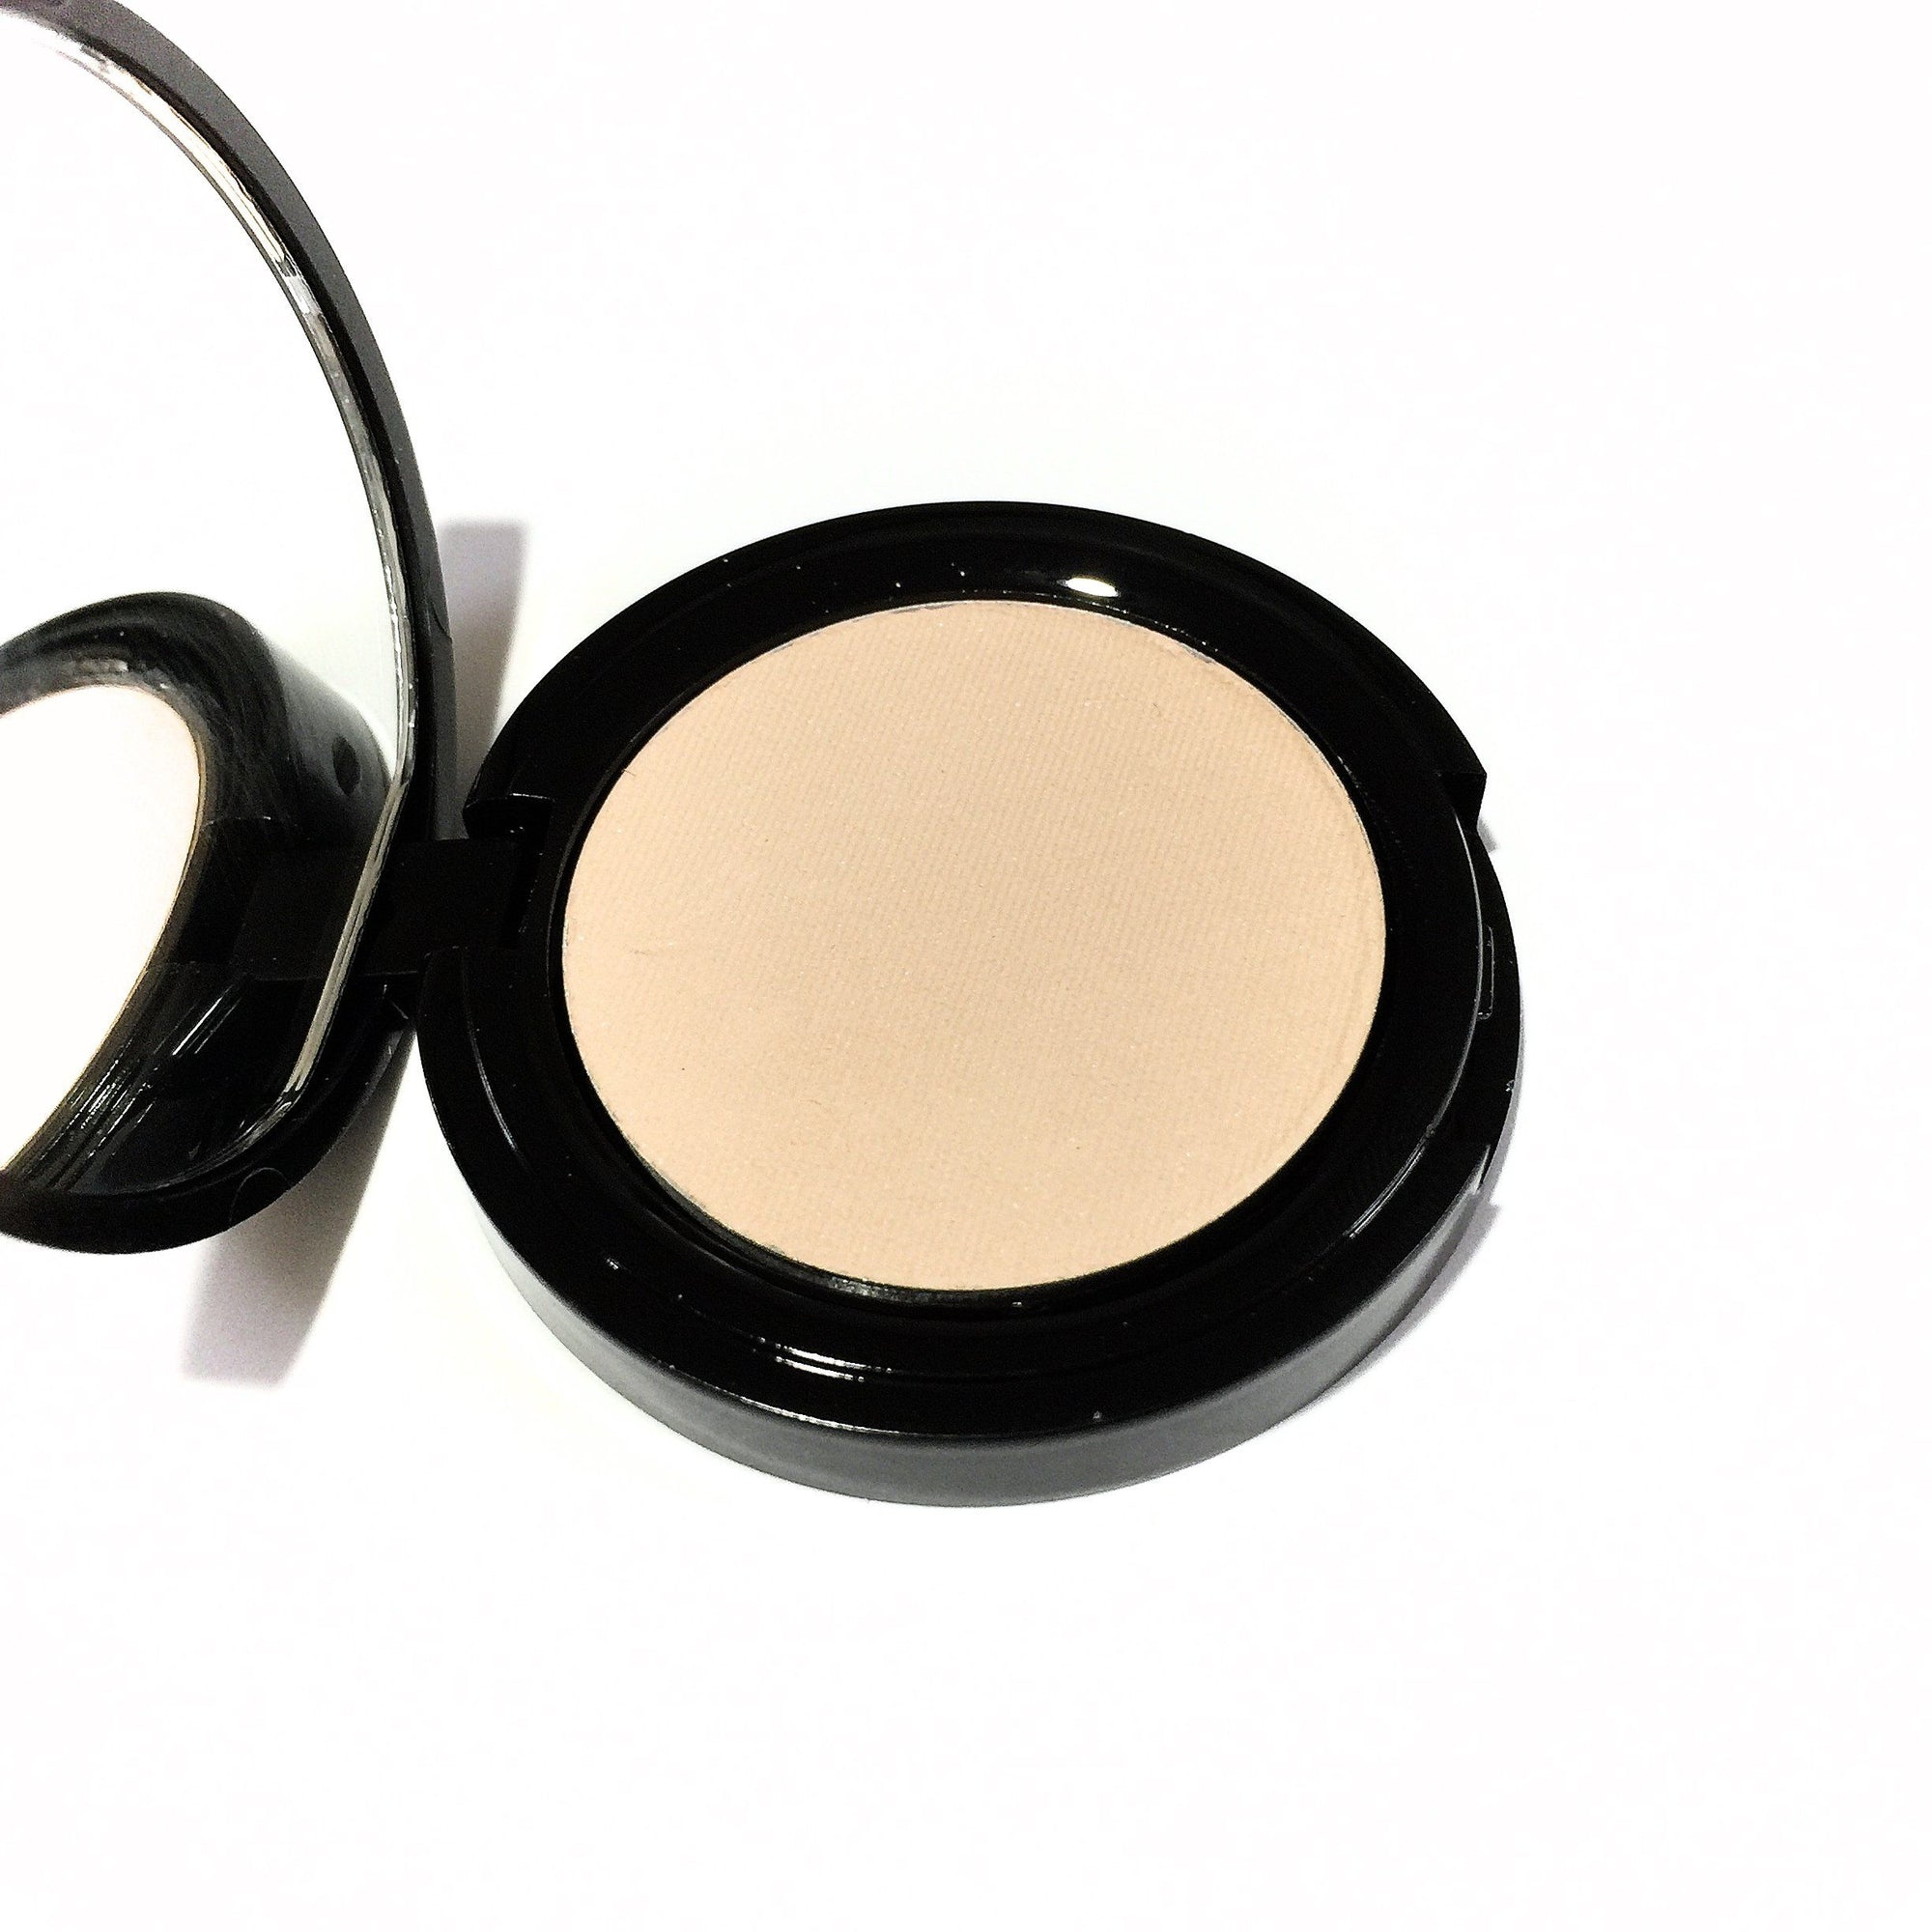 Pressed Mineral Foundation - Soft Beige - LittleStuff4u Minerals